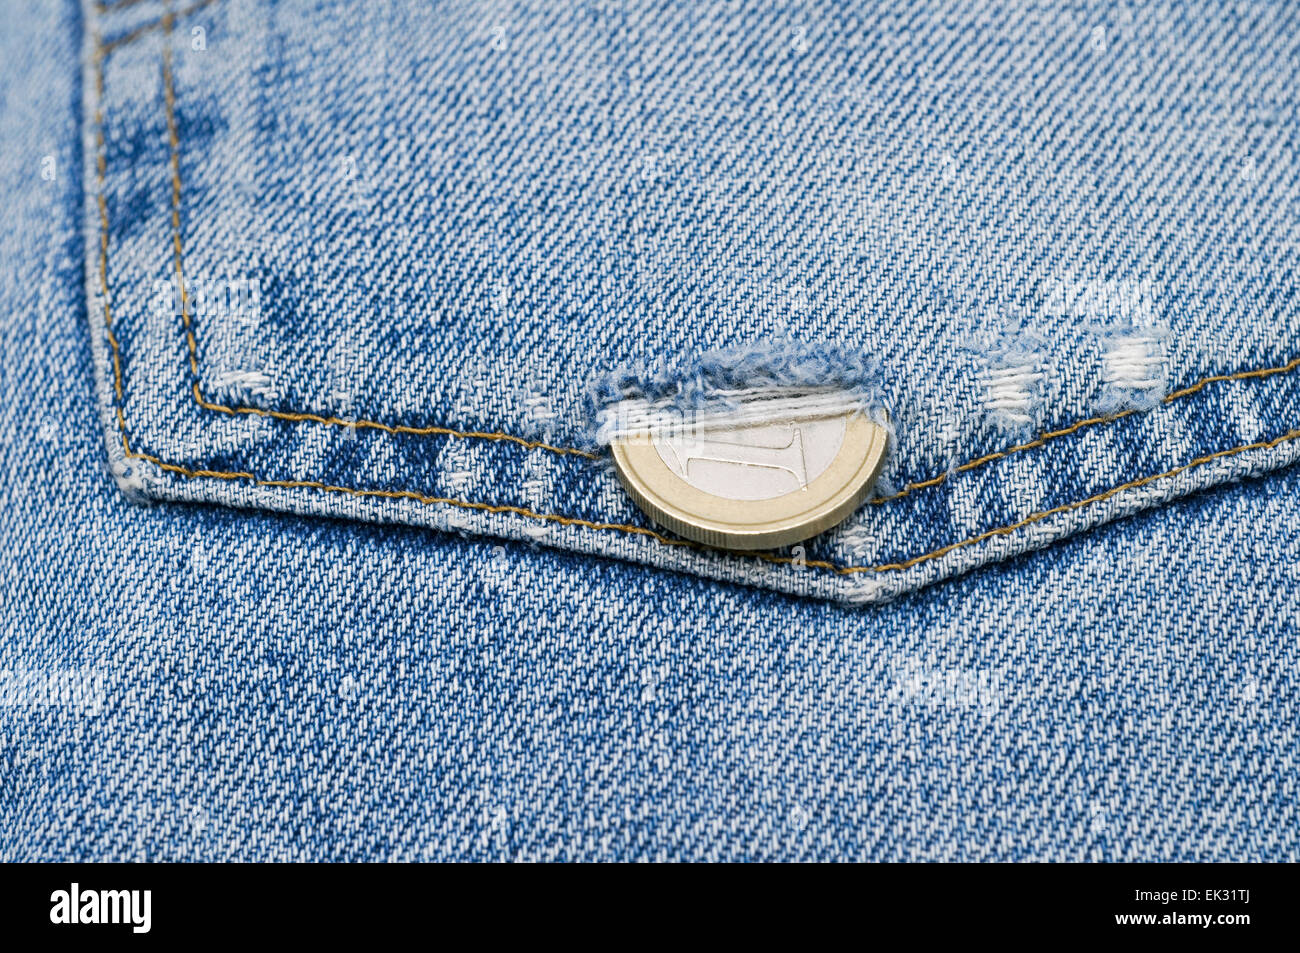 Euro coin Slipping Through A Hole On The Pocket Of Blue Jeans - Stock Image